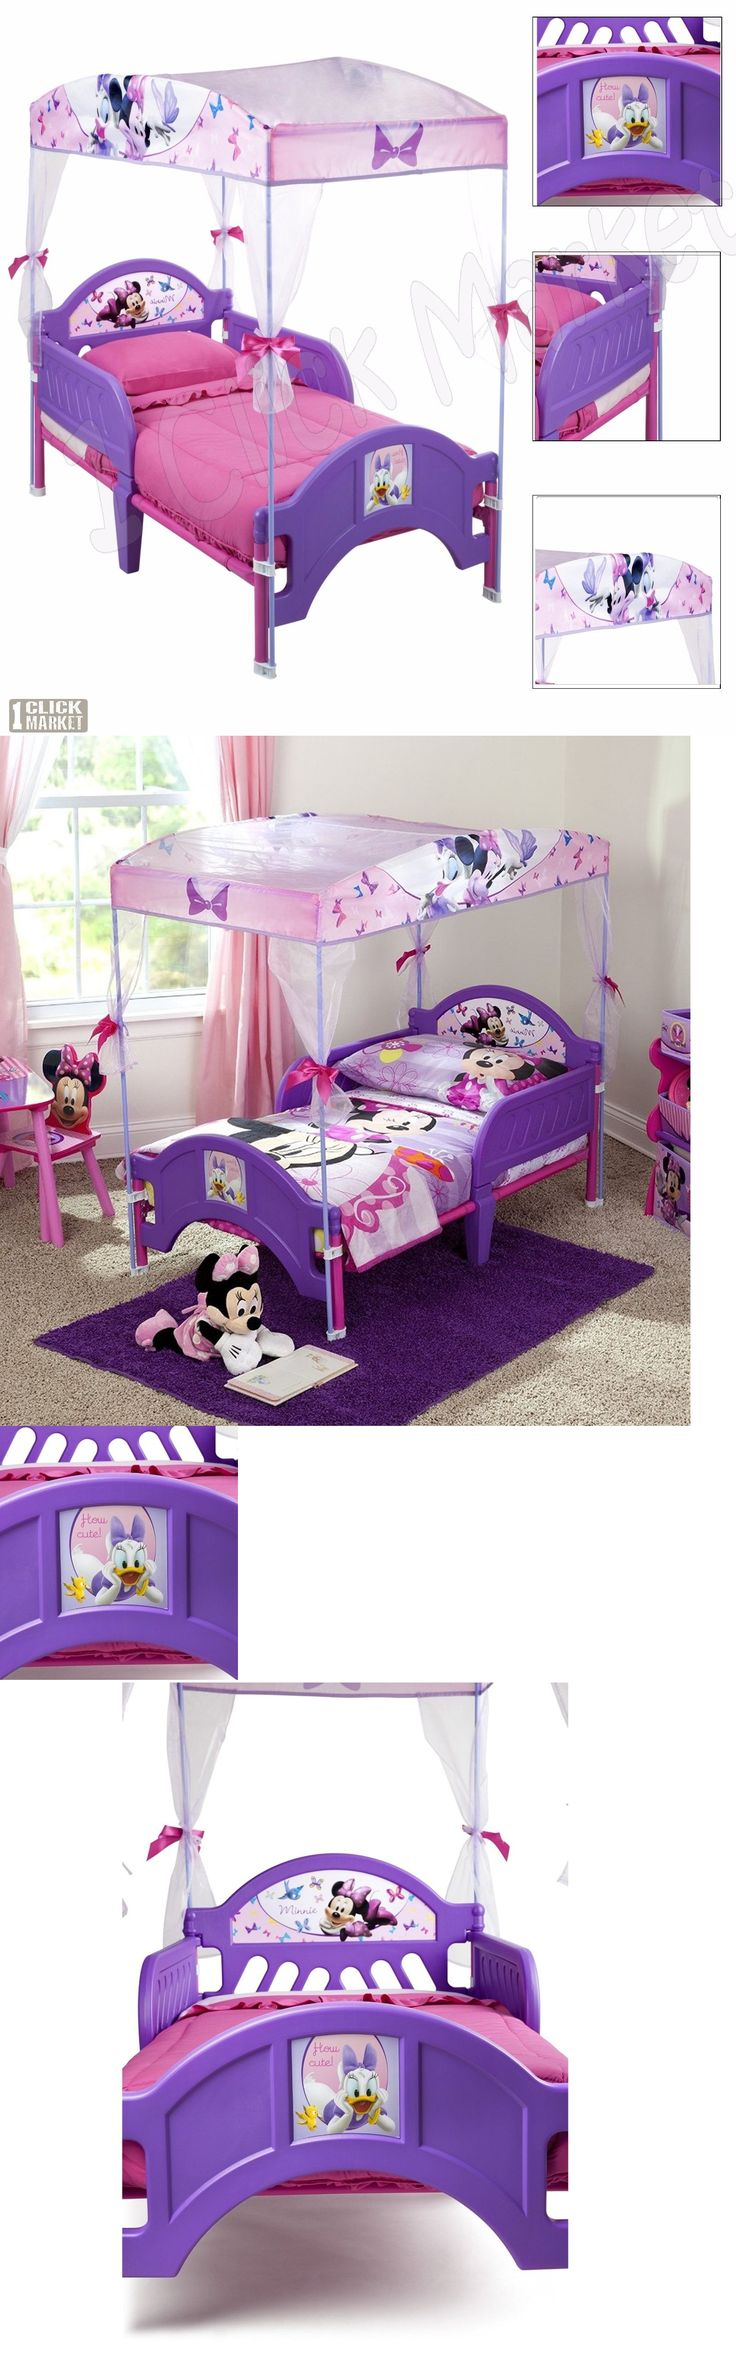 Kids Furniture: Minnie Mouse Girls Canopy Toddler Bed Kids Children Purple Bedroom Furniture Set BUY IT NOW ONLY: $98.14